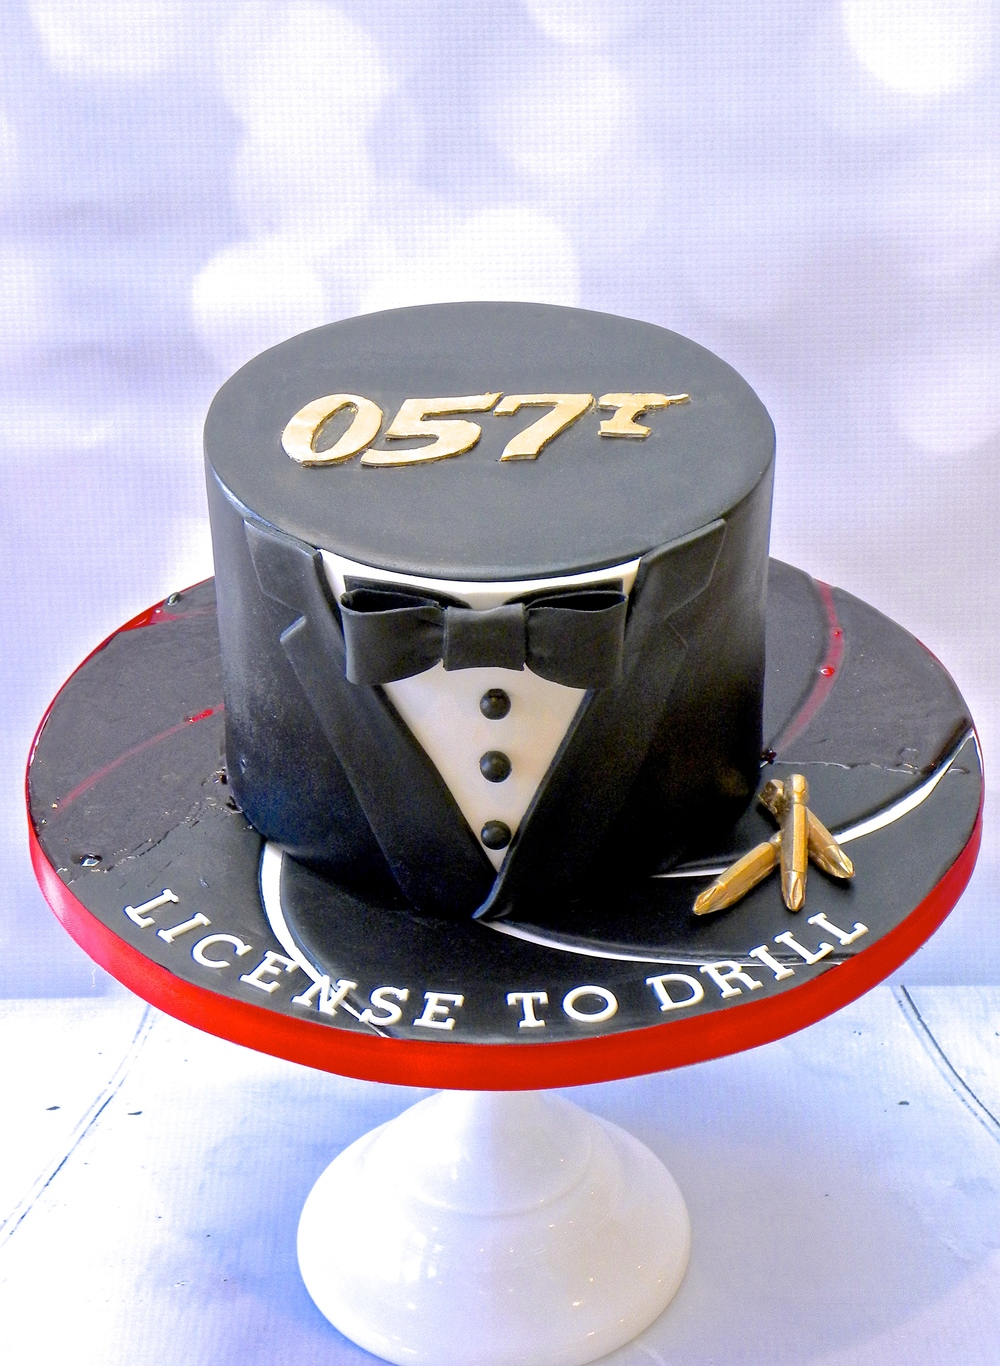 James Bond themed cake for a DIY enthusiast